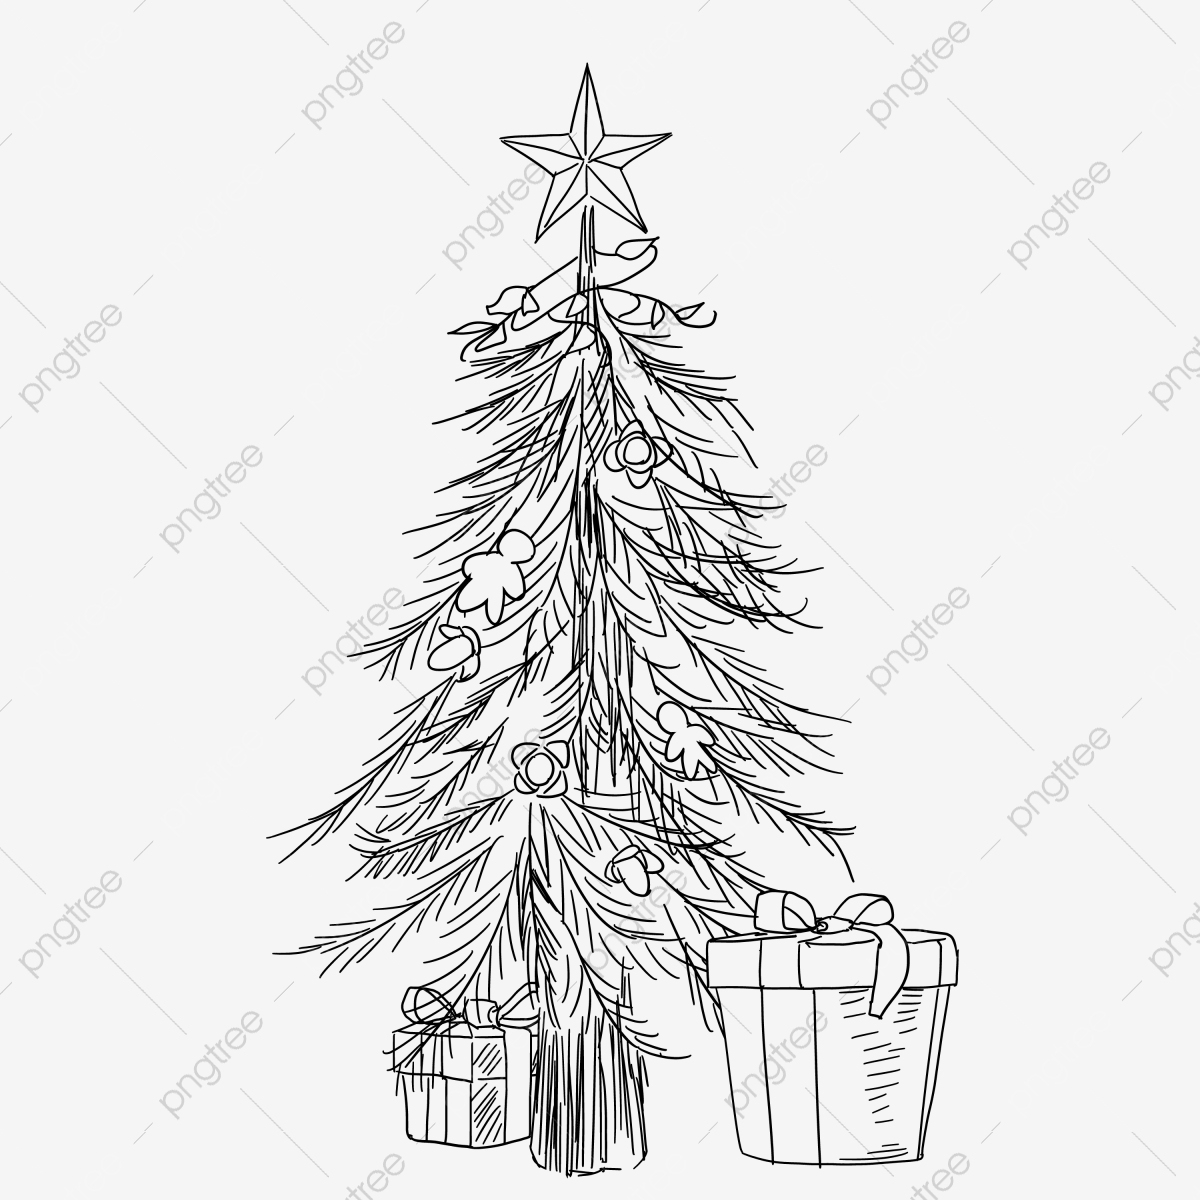 Line Drawing Christmas Gift Box Illustration Hand Drawn Cartoon Line Cap Christmas Line Drawing Christmas Tree Line Drawing Gift Line Drawing Gift Box Hand Drawn Cartoon Png Transparent Clipart Image And Psd Grab all of the markers and crayons and let your kiddos get to work creating something extra here's a christmas tree tutorial we found at drawing how to but this one includes some packages at the foot of it all. https pngtree com freepng line drawing christmas gift box illustration hand drawn cartoon line cap christmas line drawing christmas tree 3897728 html